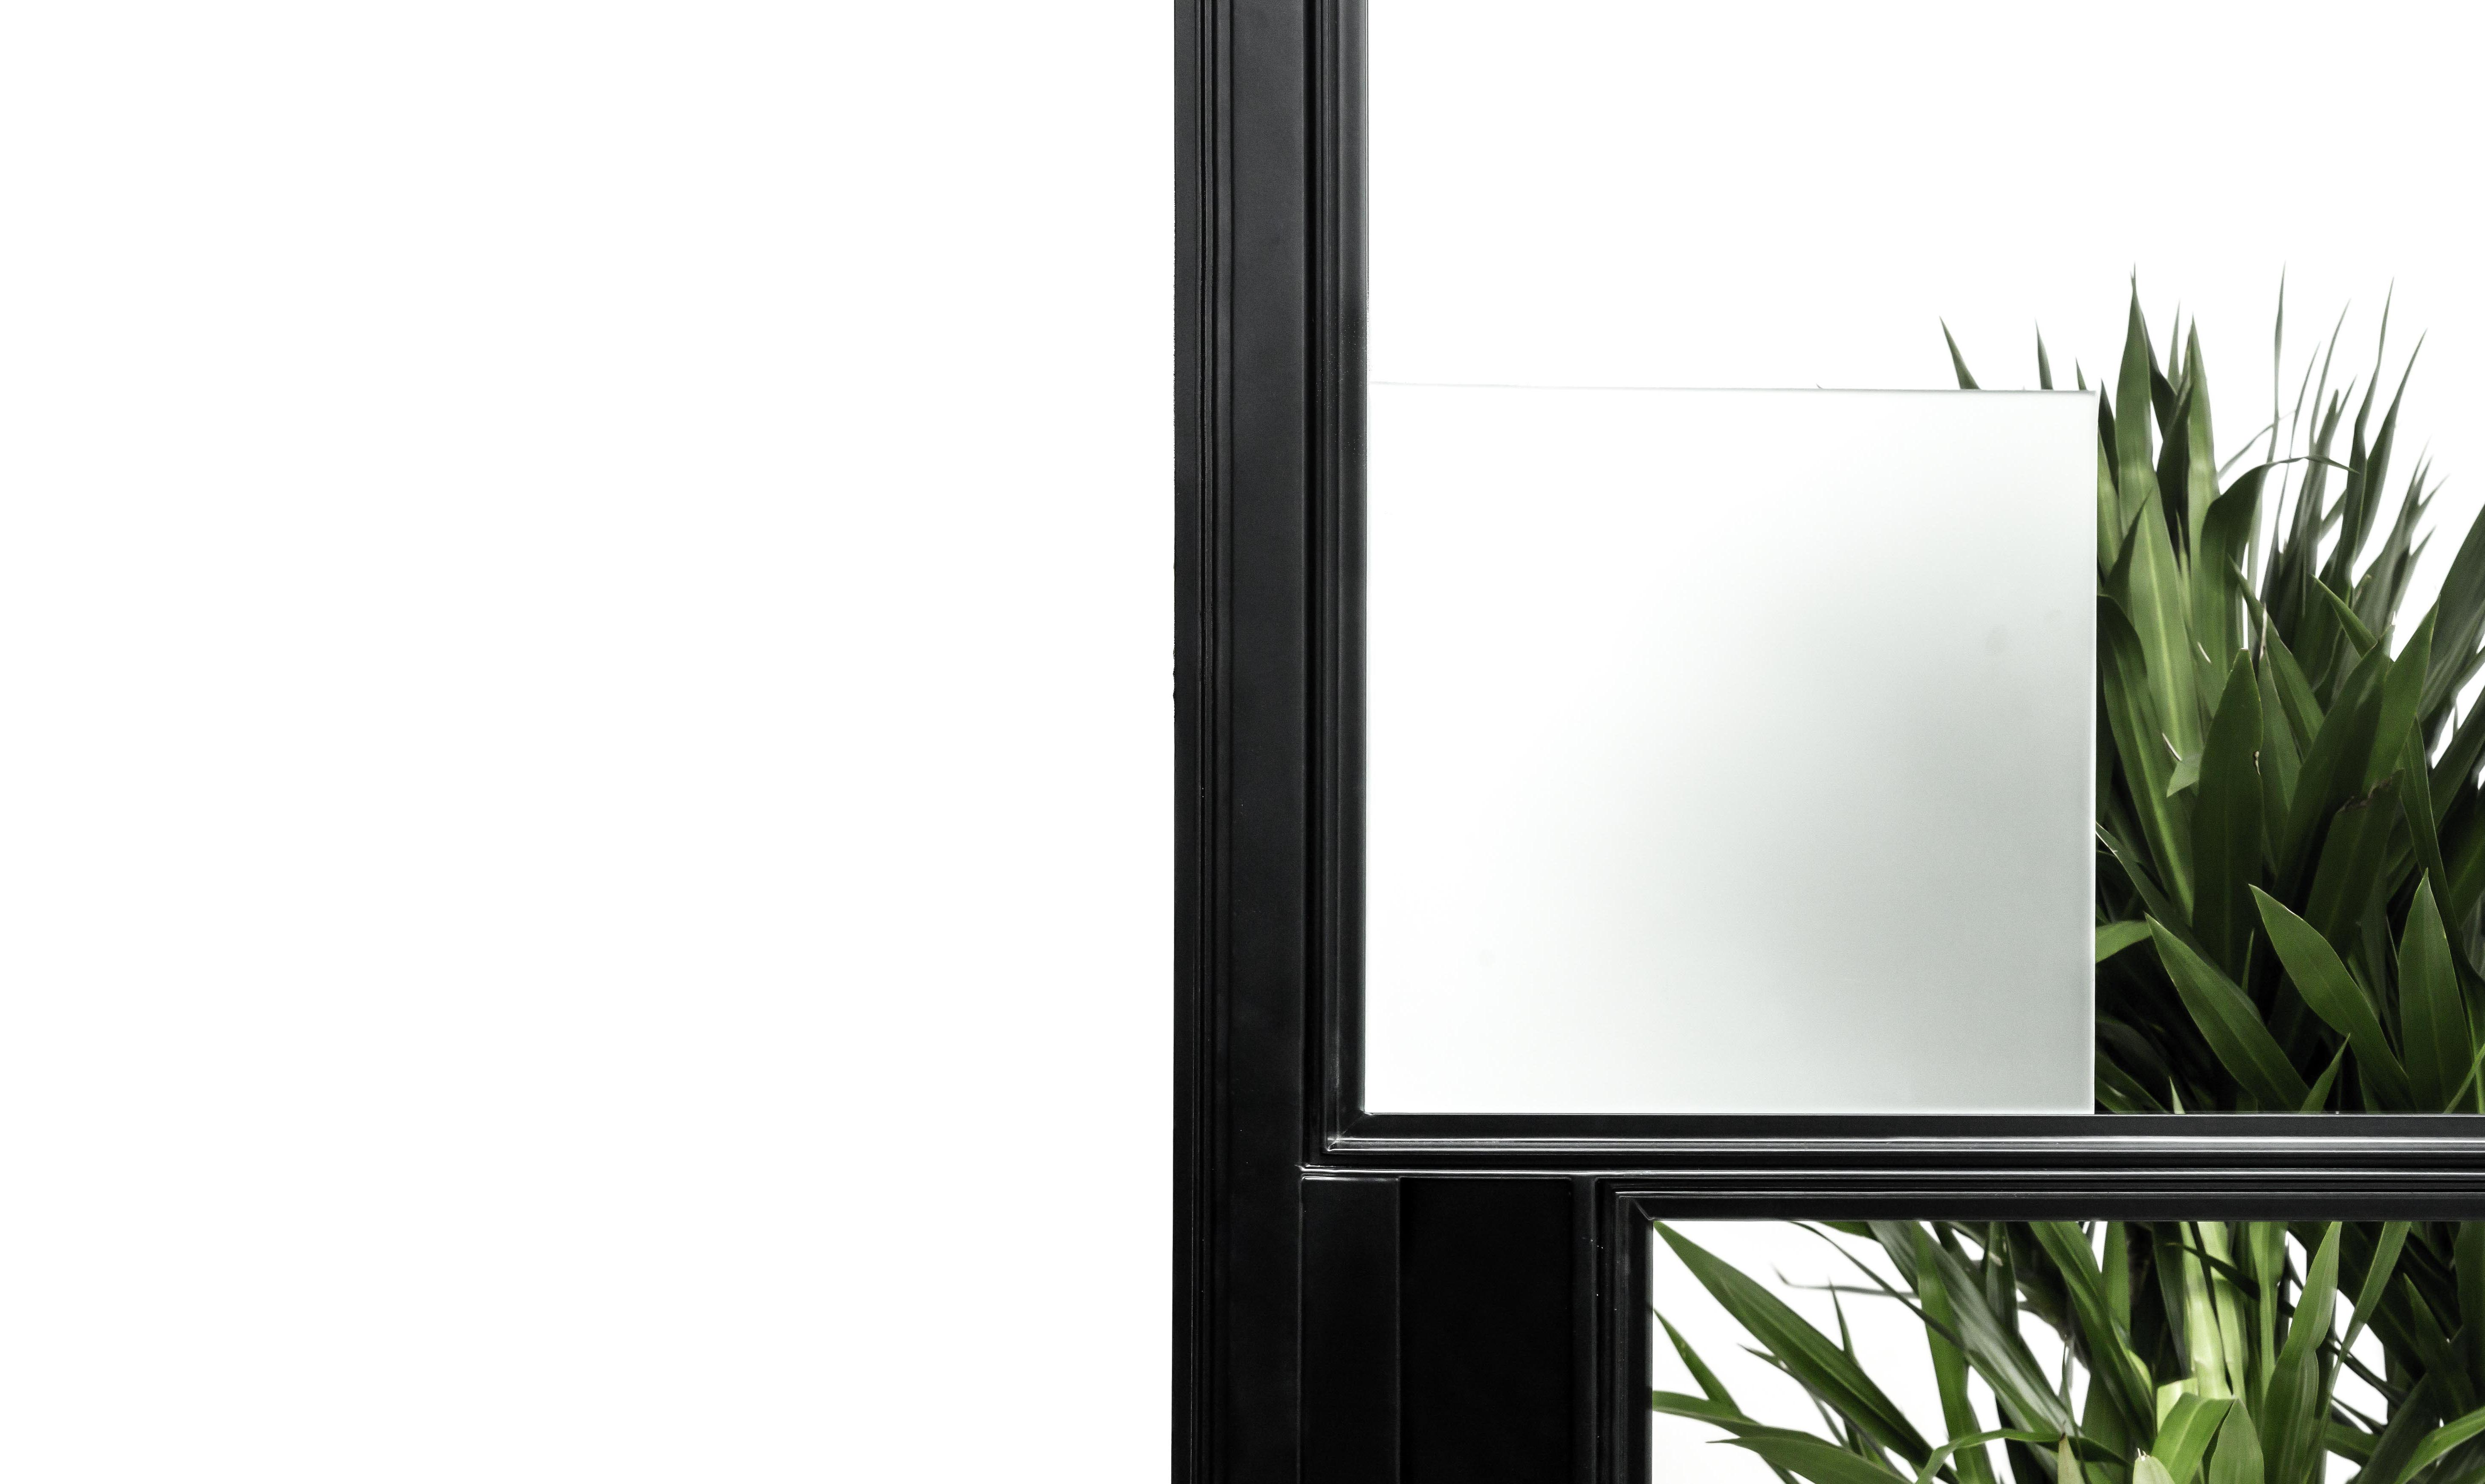 steel framed doors and glass windows - form and alloy